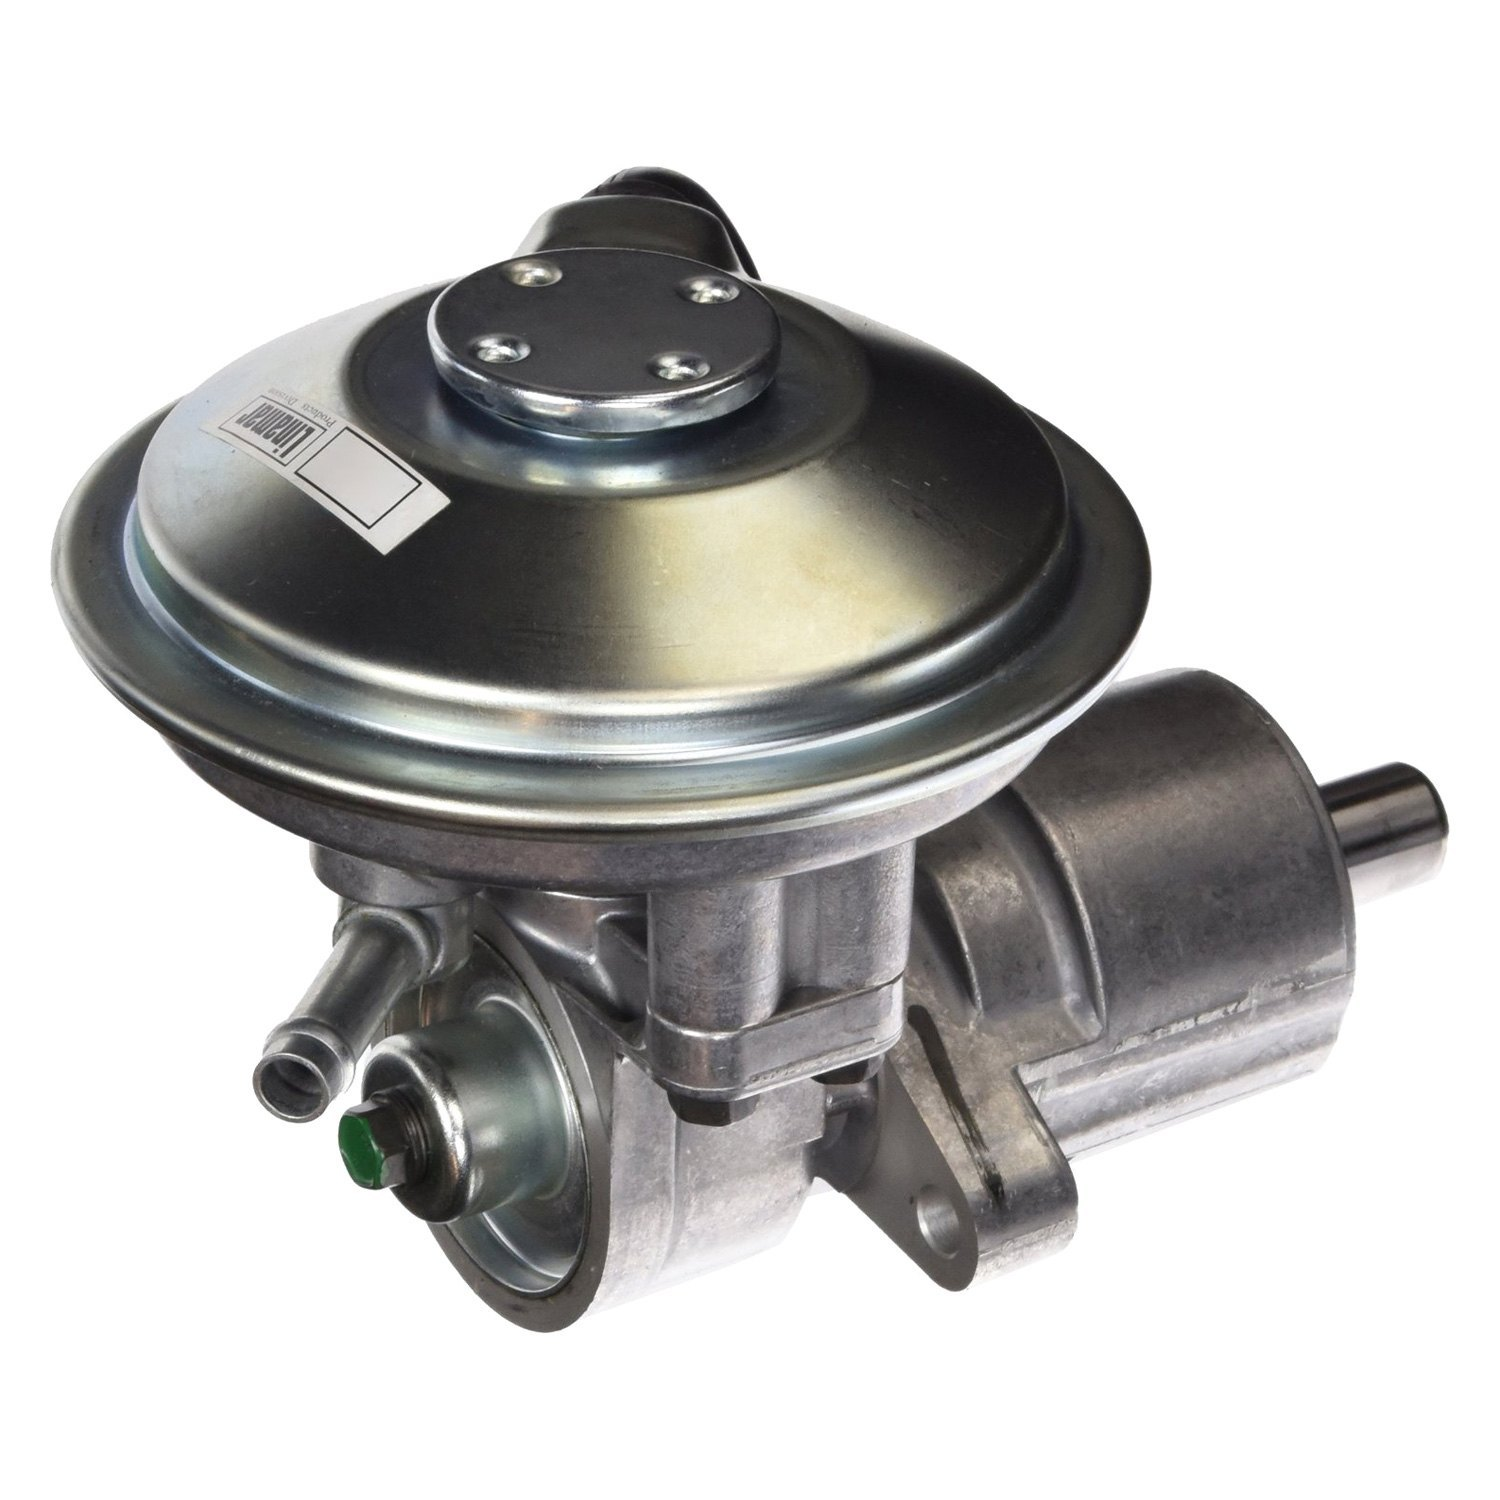 Brake Vacuum Pump : Motorcraft brpv power brake booster vacuum pump